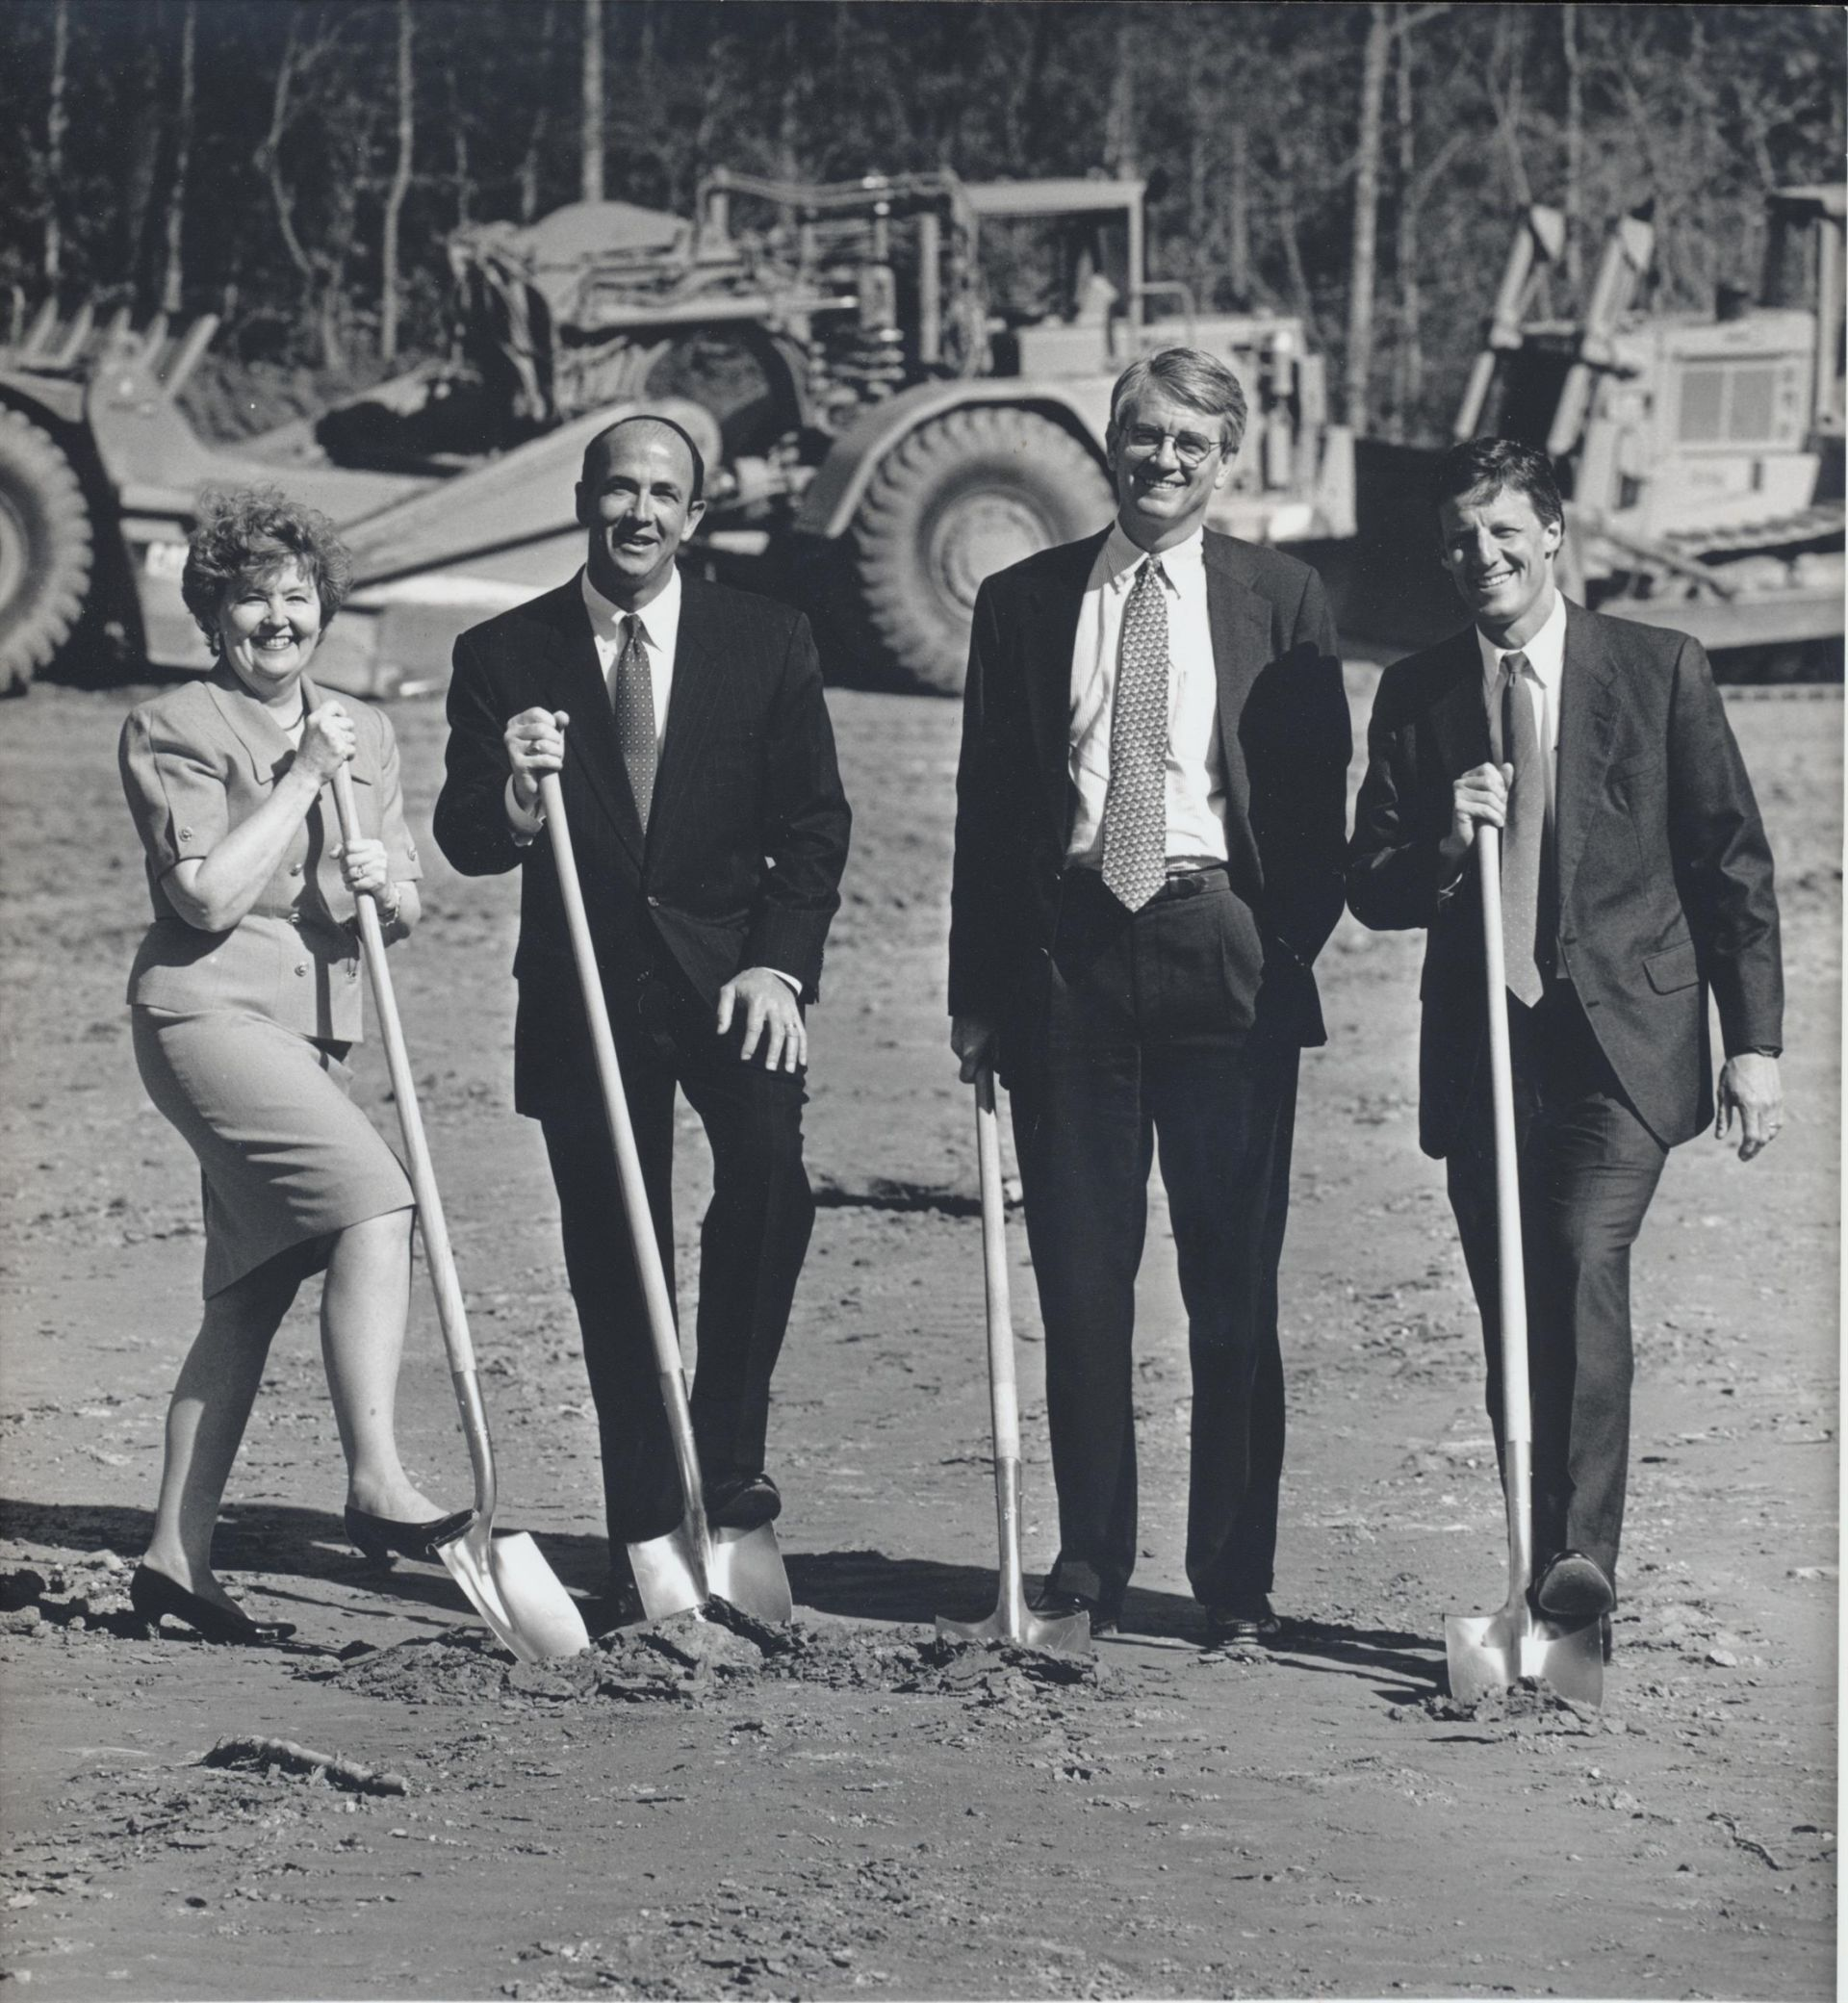 Norcross campus groundbreaking